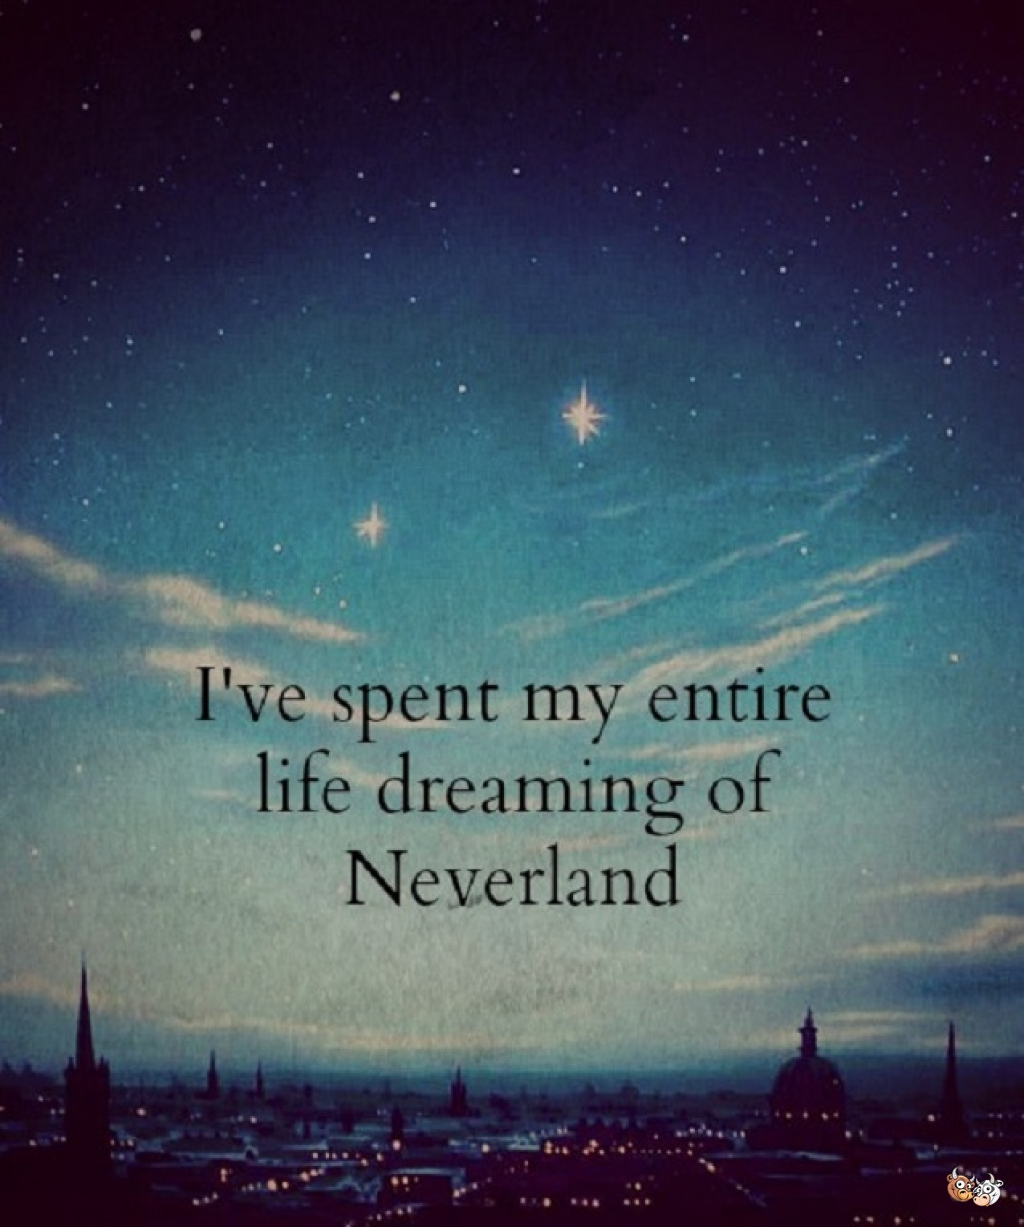 Sad Quotes Quotesgram: Sad Disney Quotes. QuotesGram